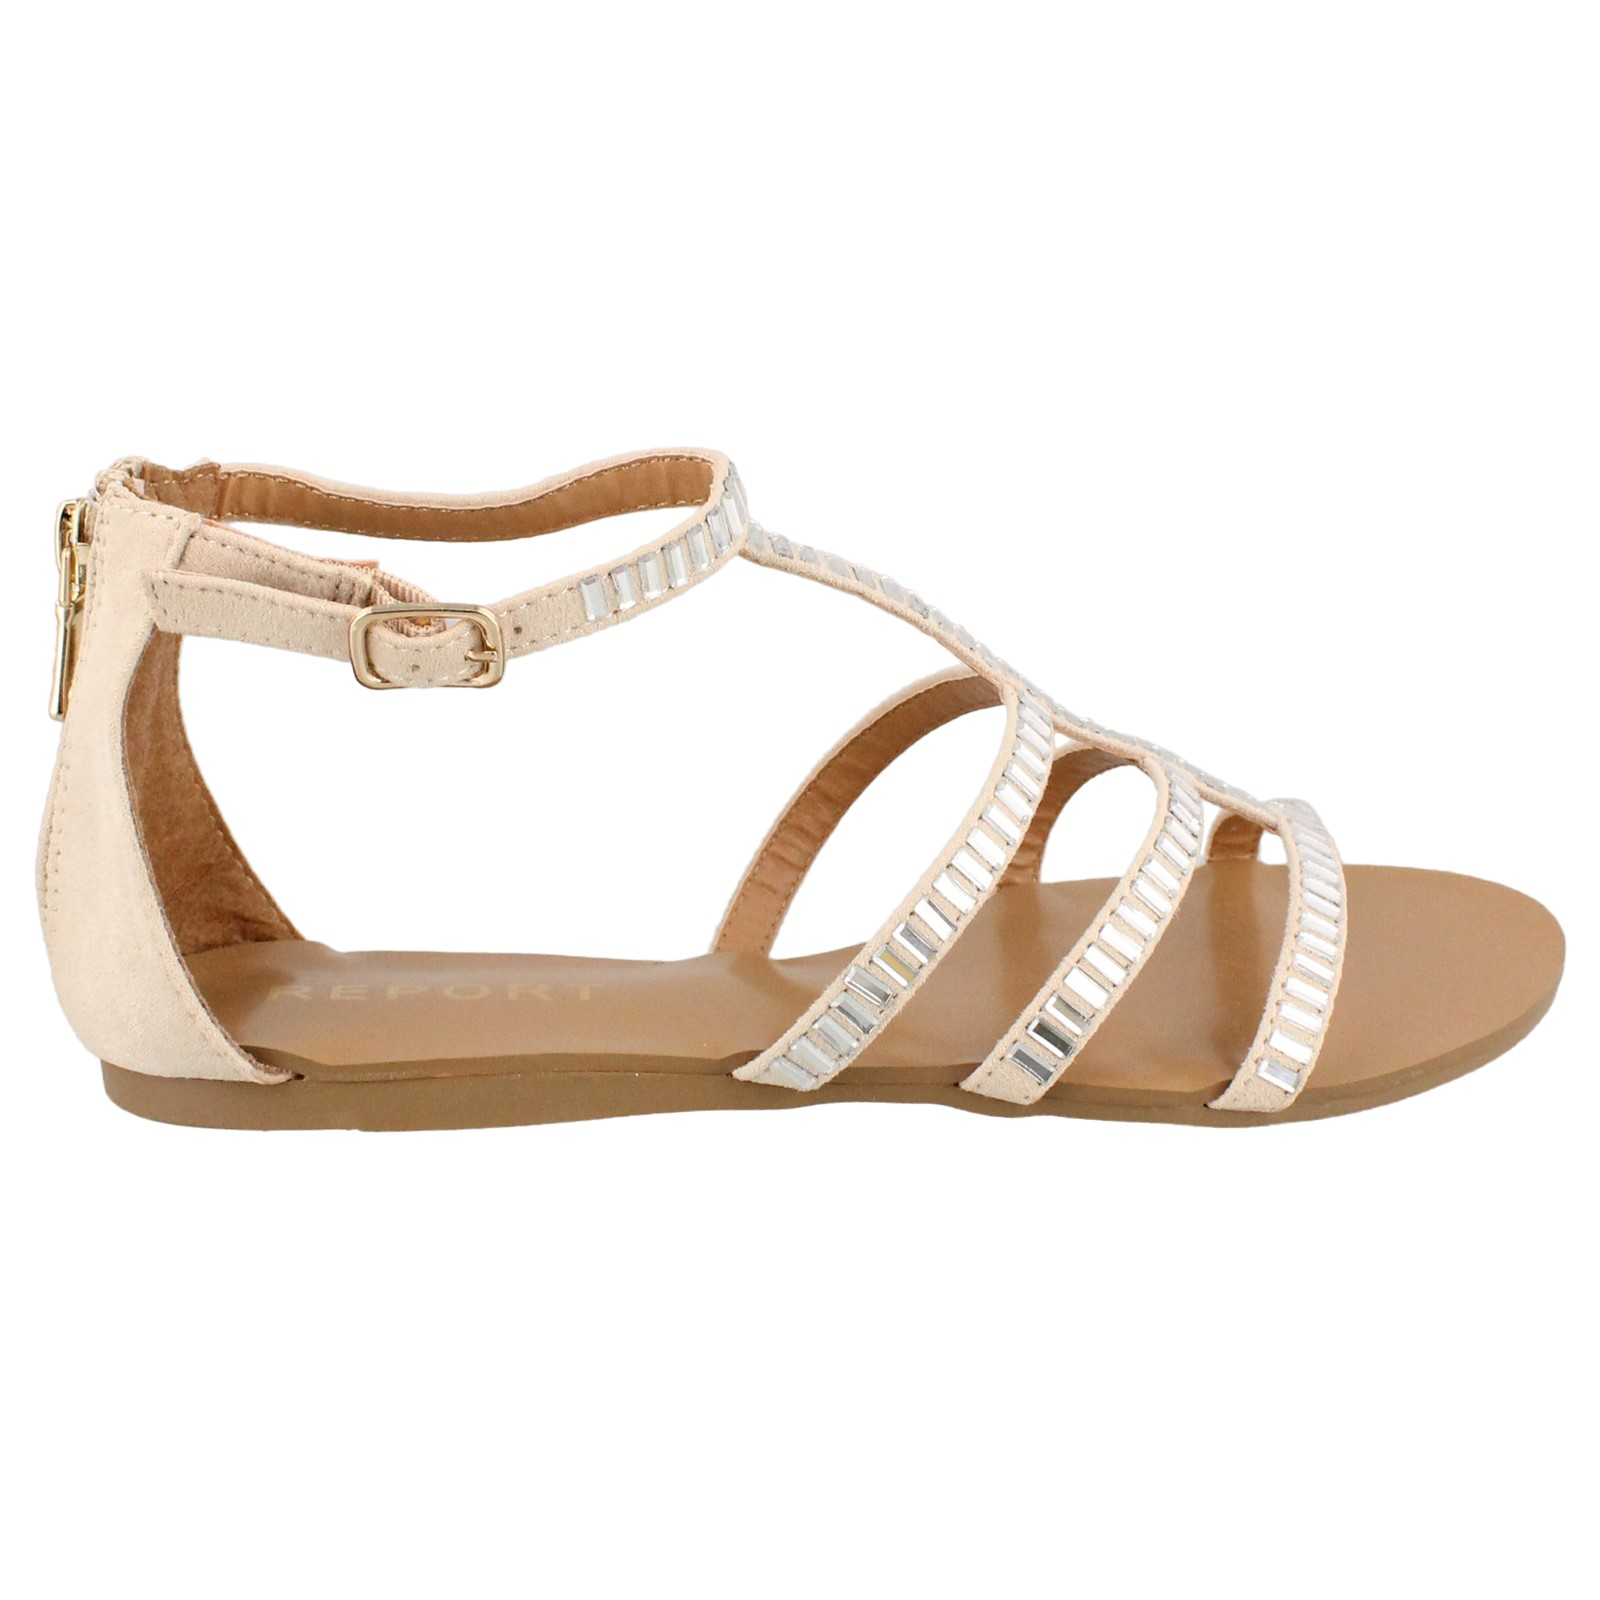 Women's Report, Scott Low Heel Sandal